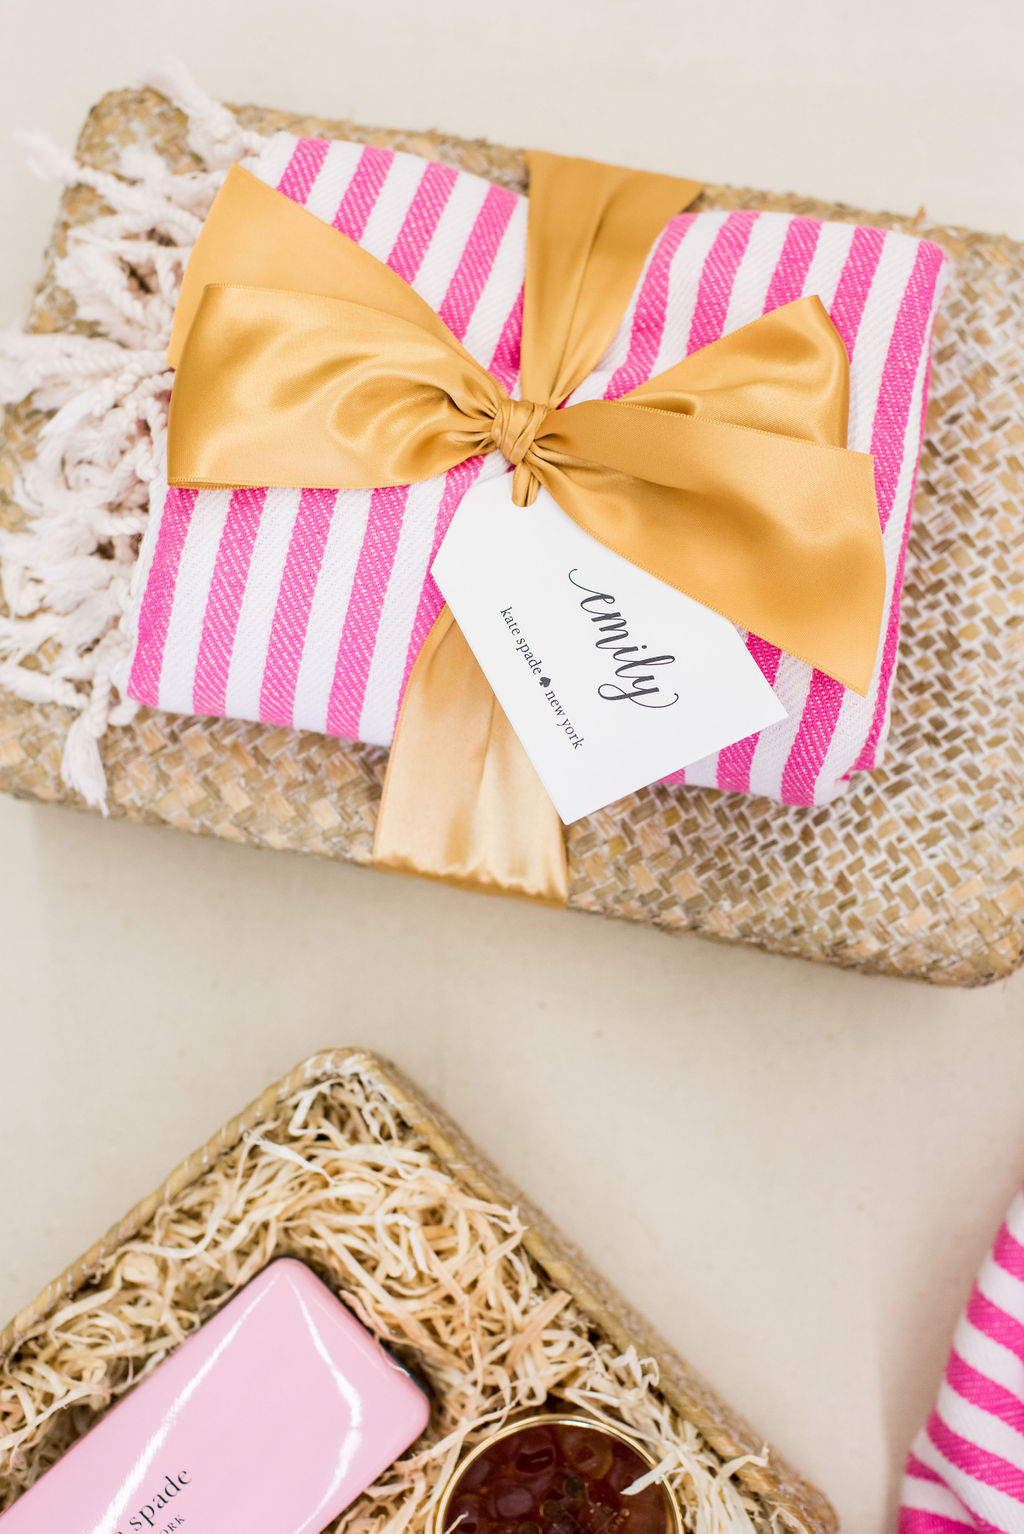 Custom curated gift boxes for Kate Spade New York